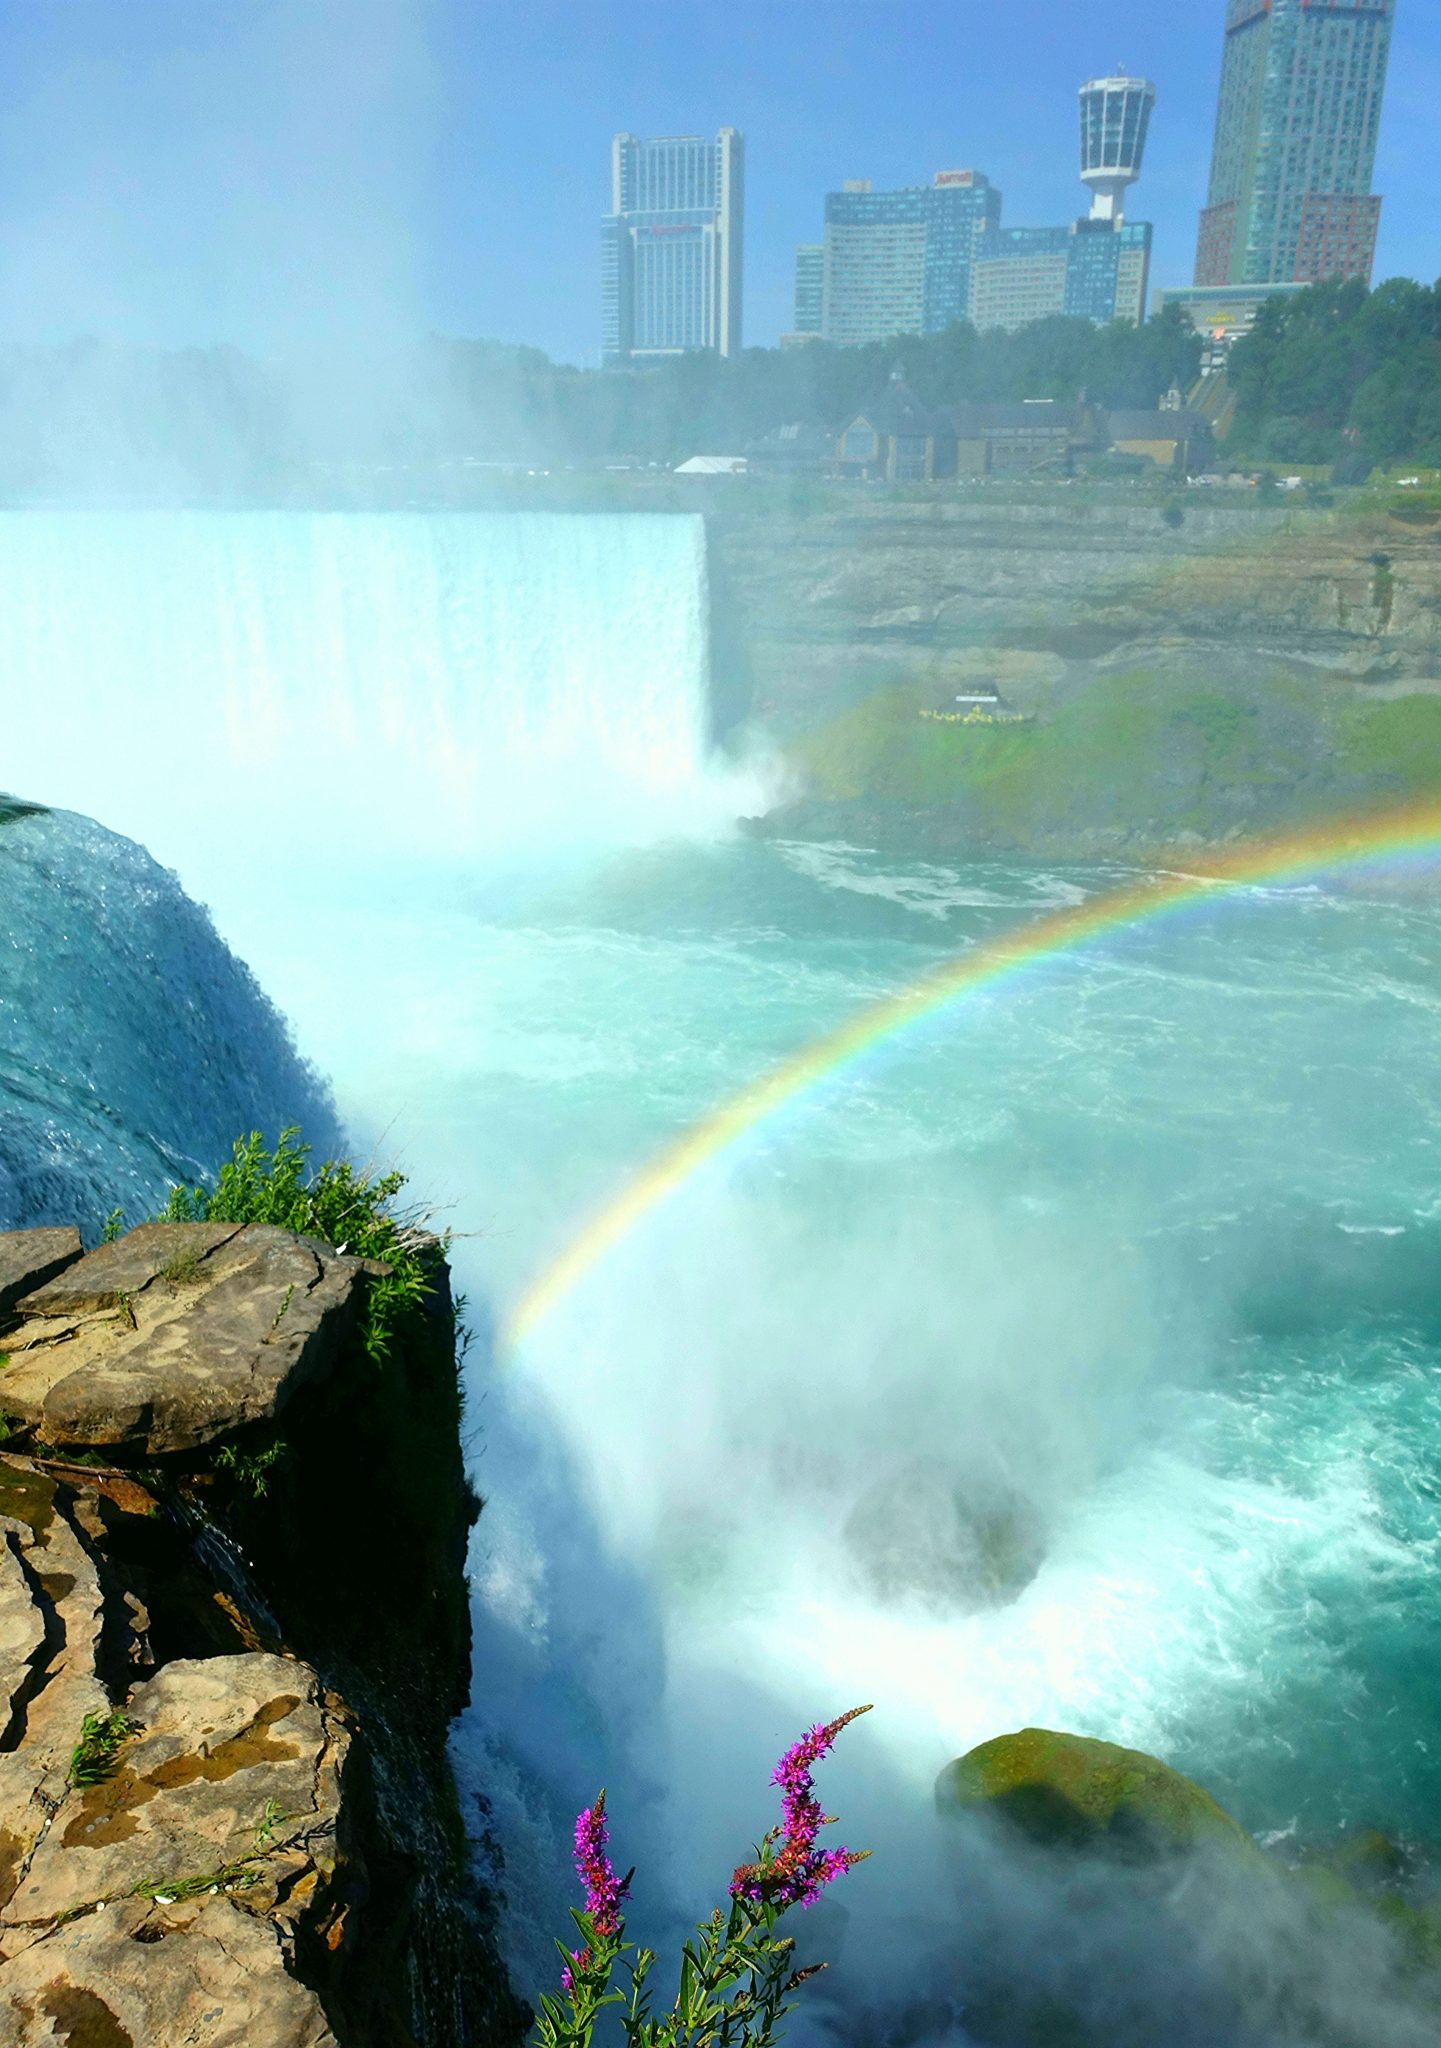 Visiting the Niagara Falls – 5 great tips for an amazing day